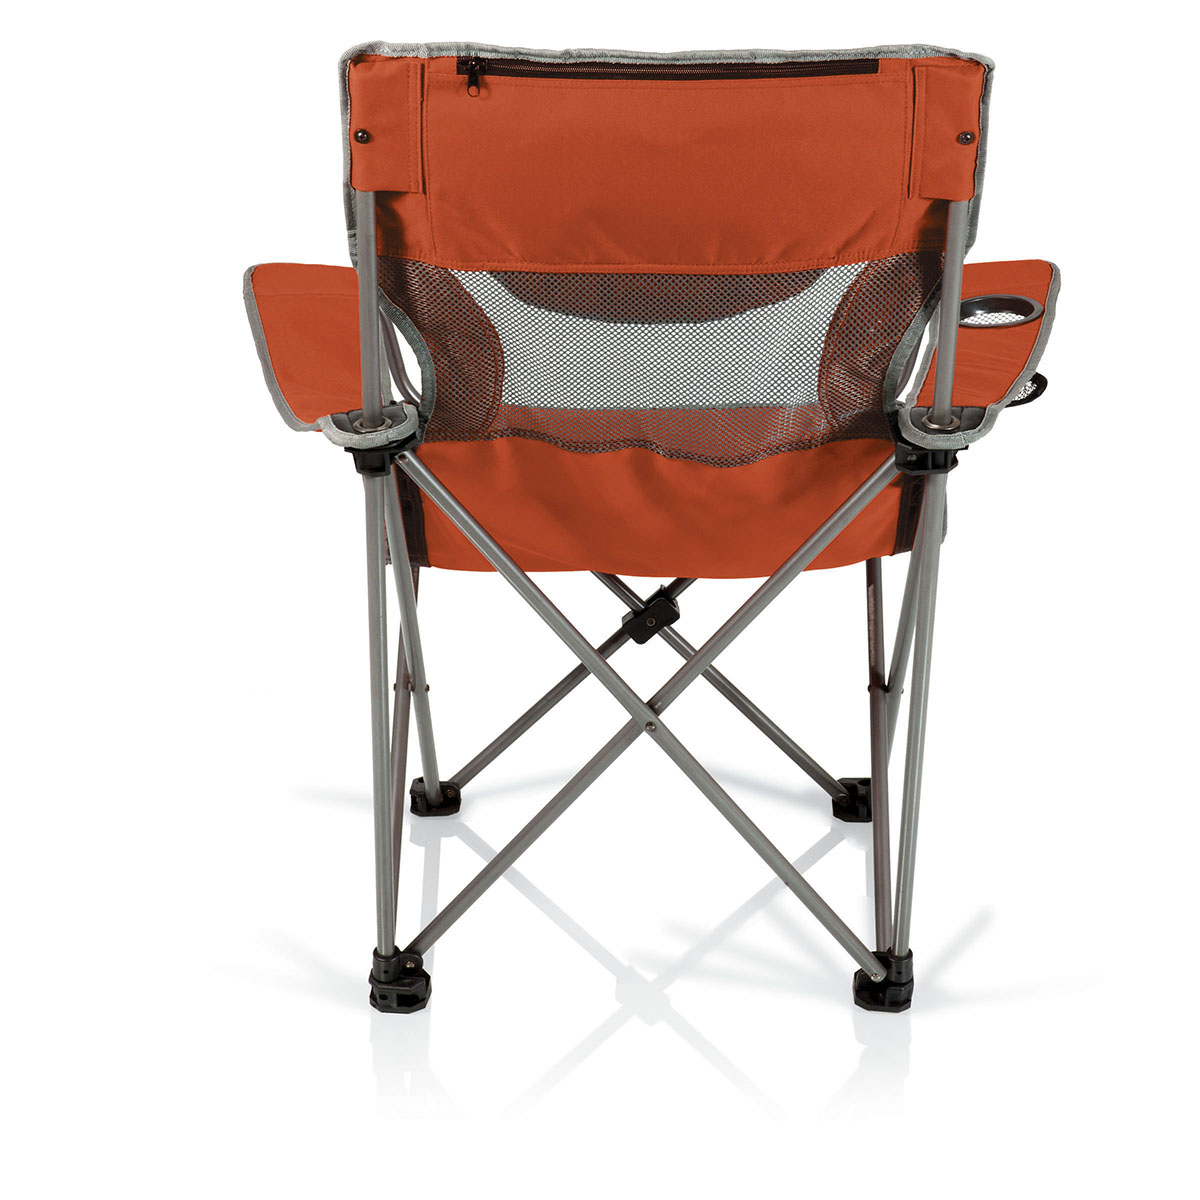 picnic time chairs posture chair support the campsite by standard height quad